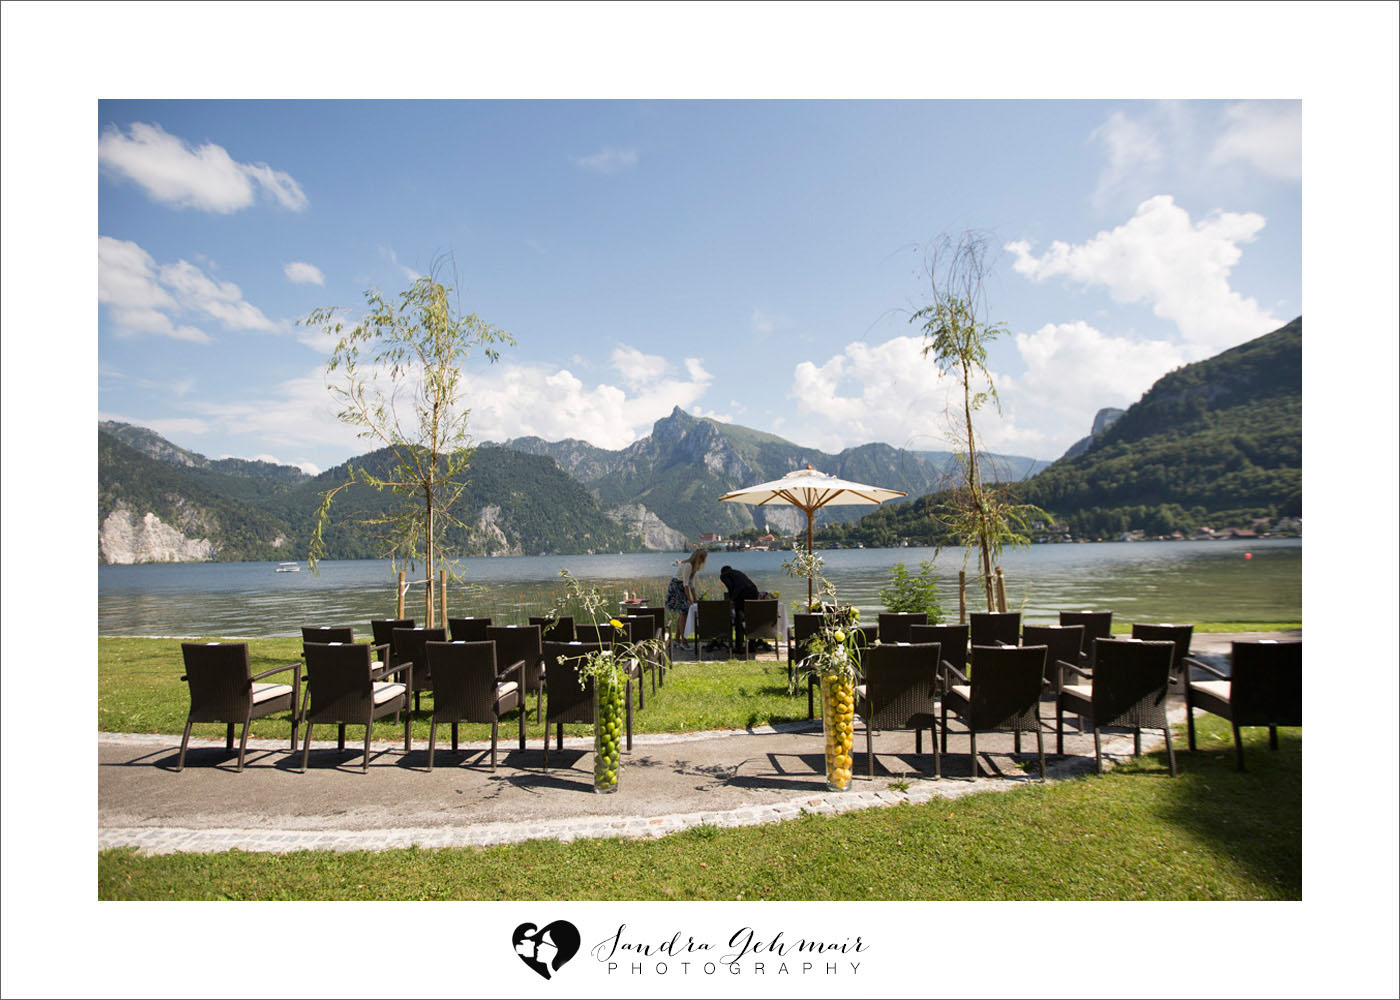 020_heiraten_am_see_spitzvilla_sandra_gehmair